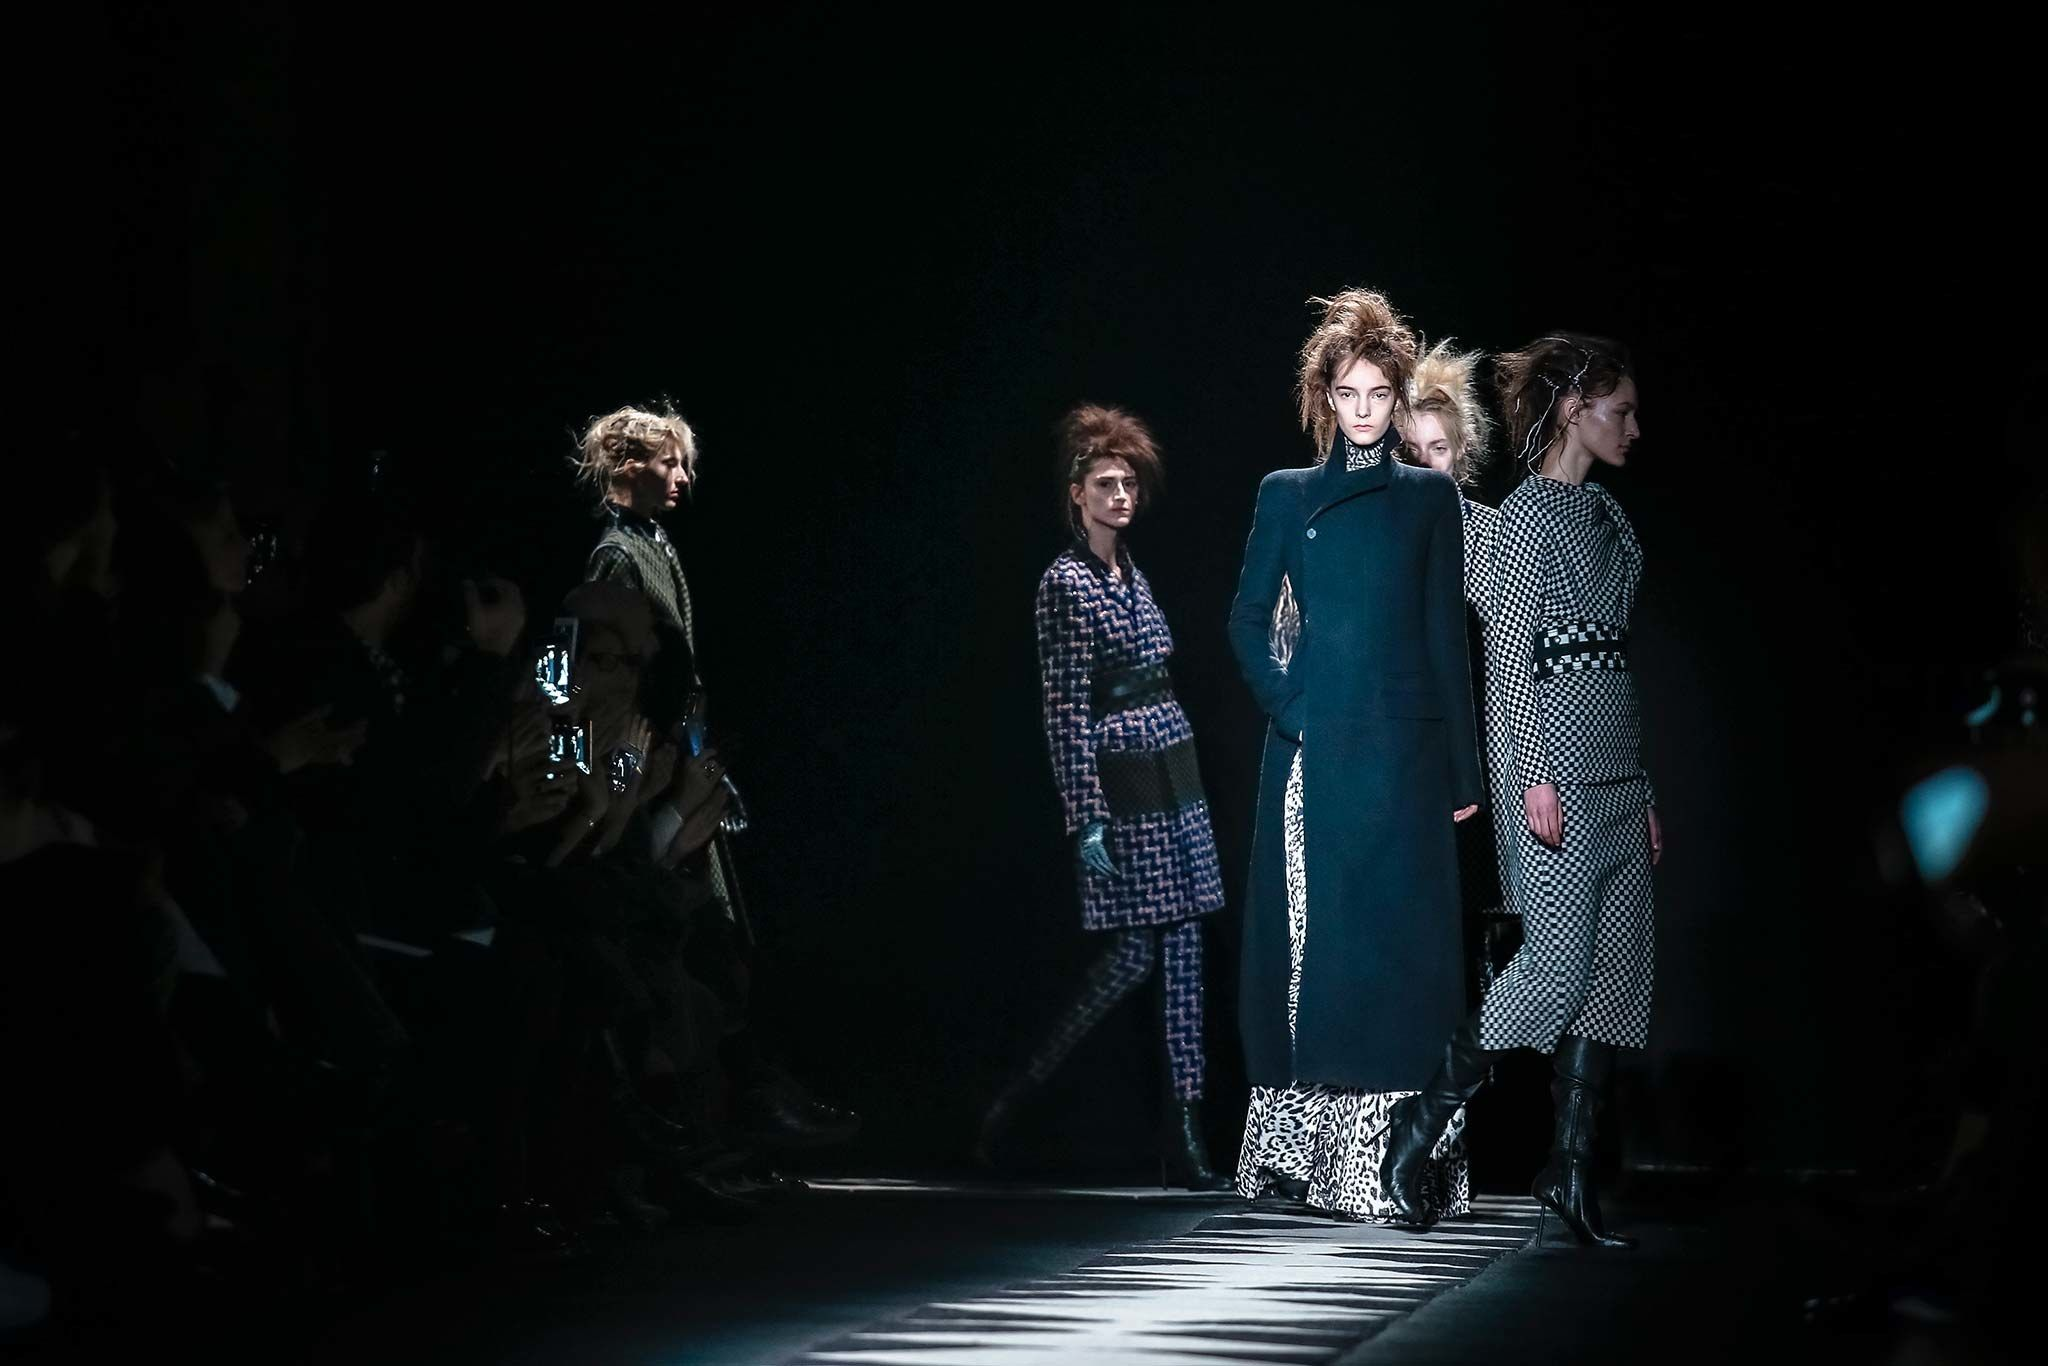 Haider Ackermann Fall 2015 Ready-to-Wear Atmosphere and Candid Photos - Vogue